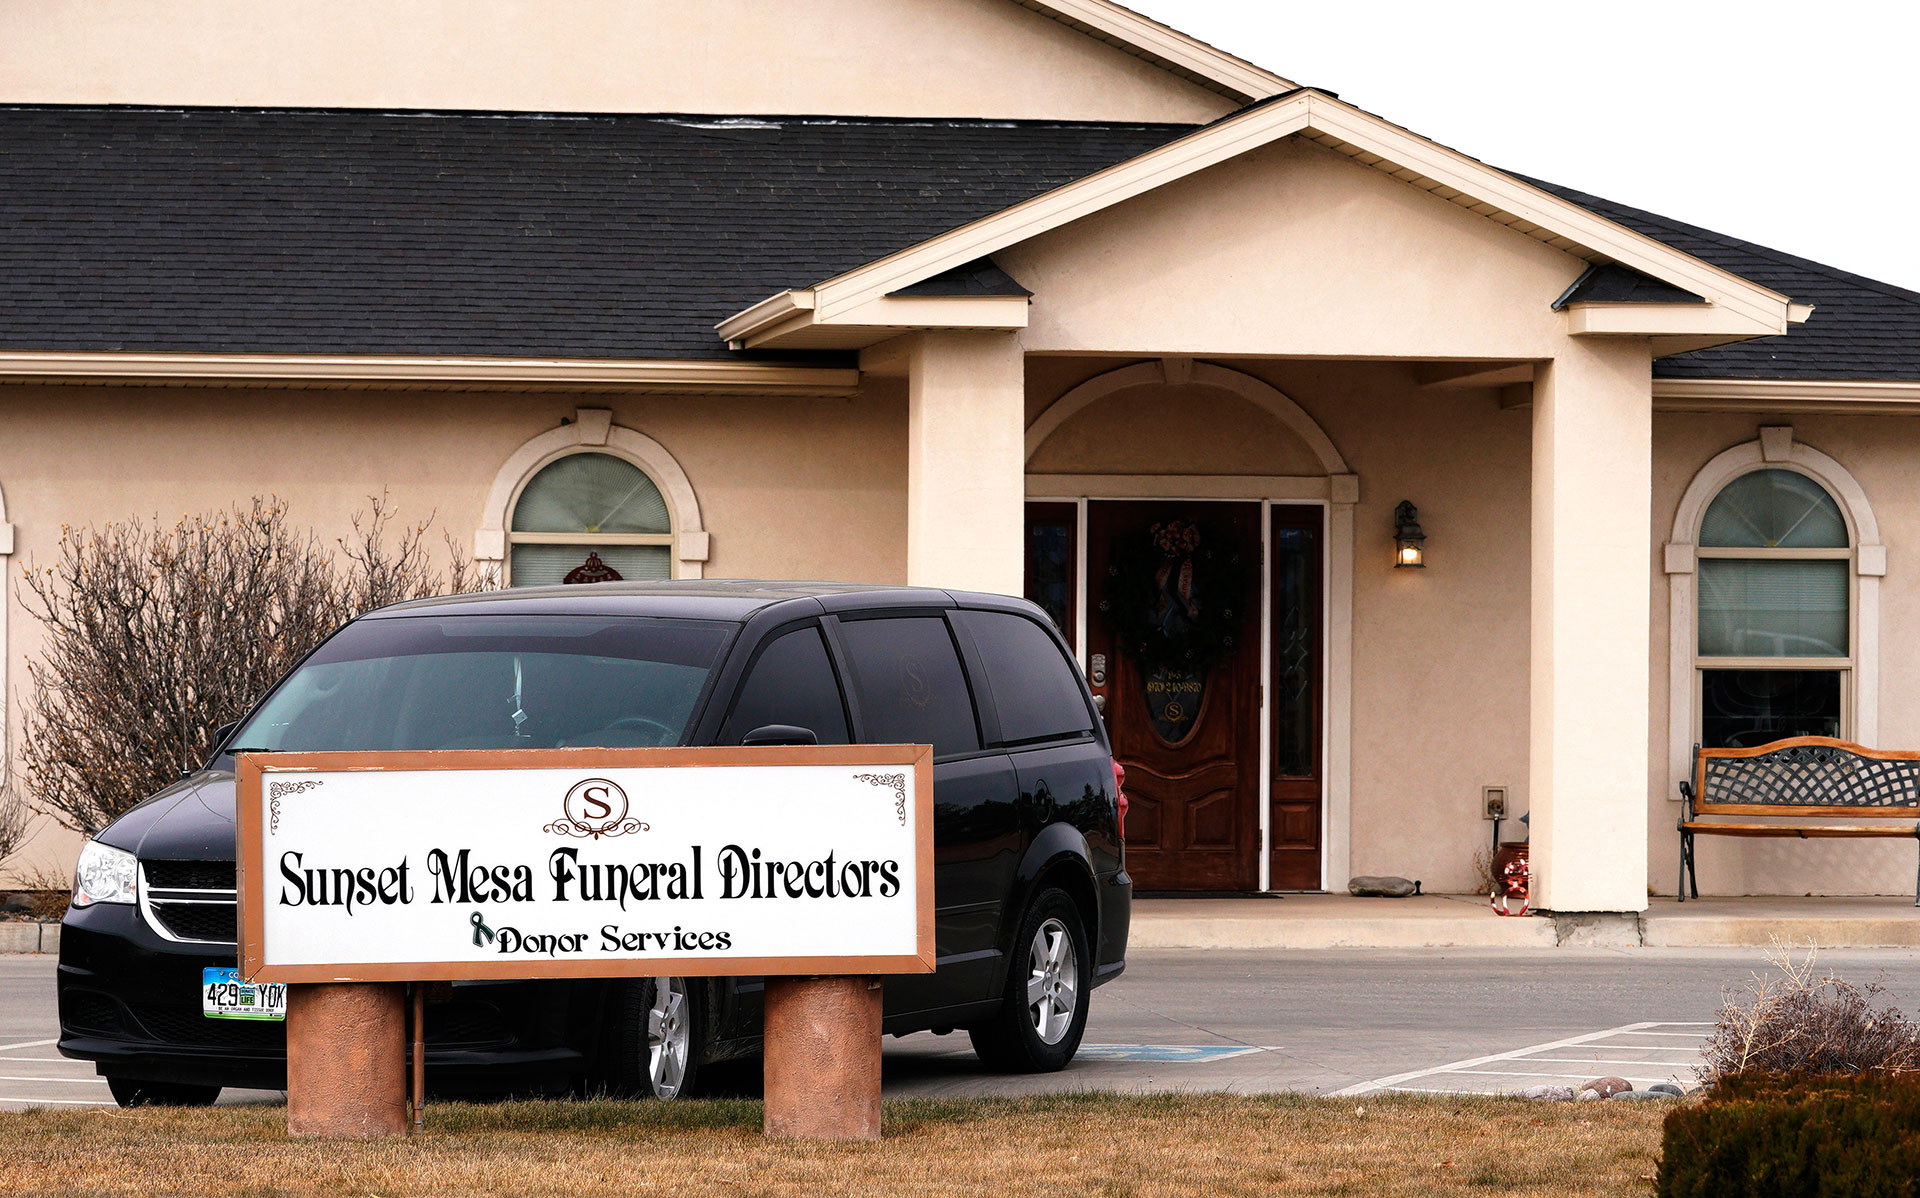 FBI scrutinizes funeral home that also makes money selling